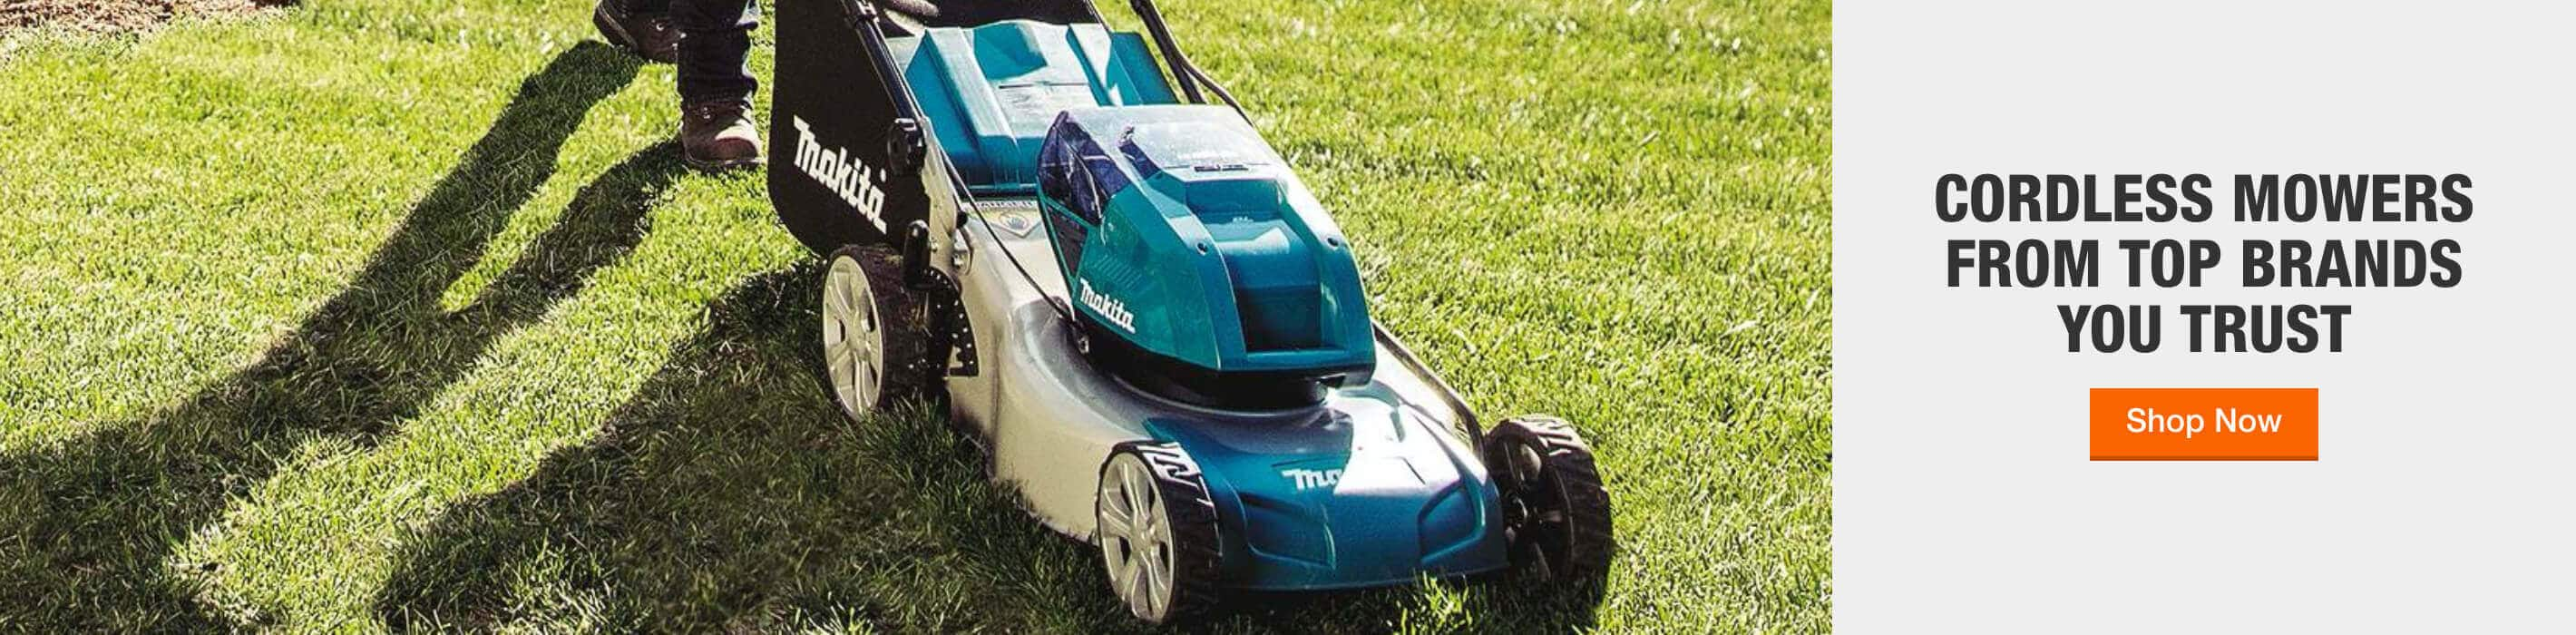 CORDLESS MOWERS FROM TOP BRANDS YOU TRUST Shop Now